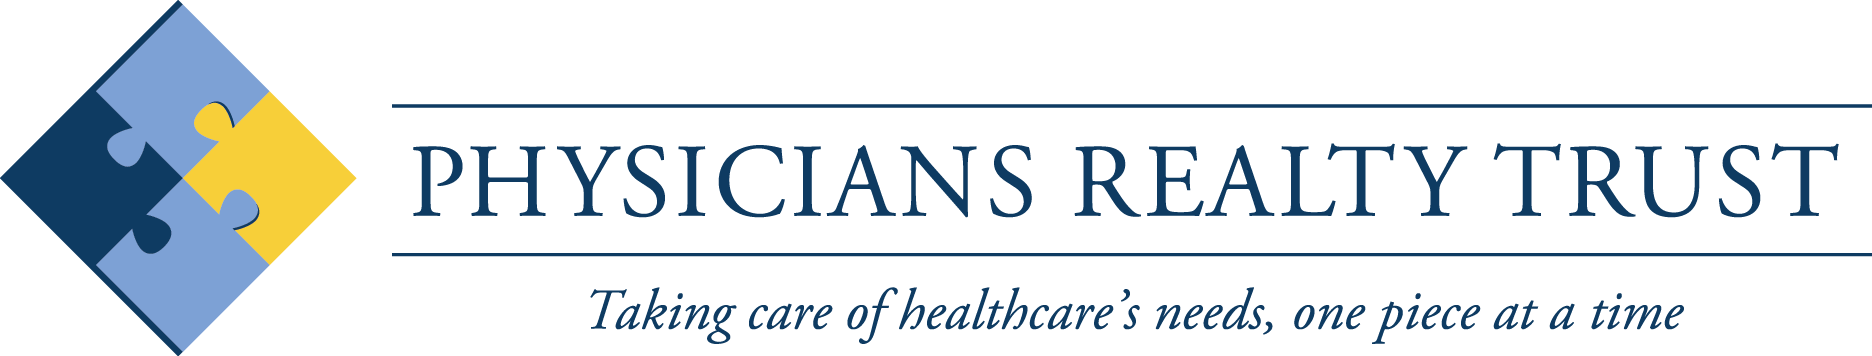 Physicians Realty Trust